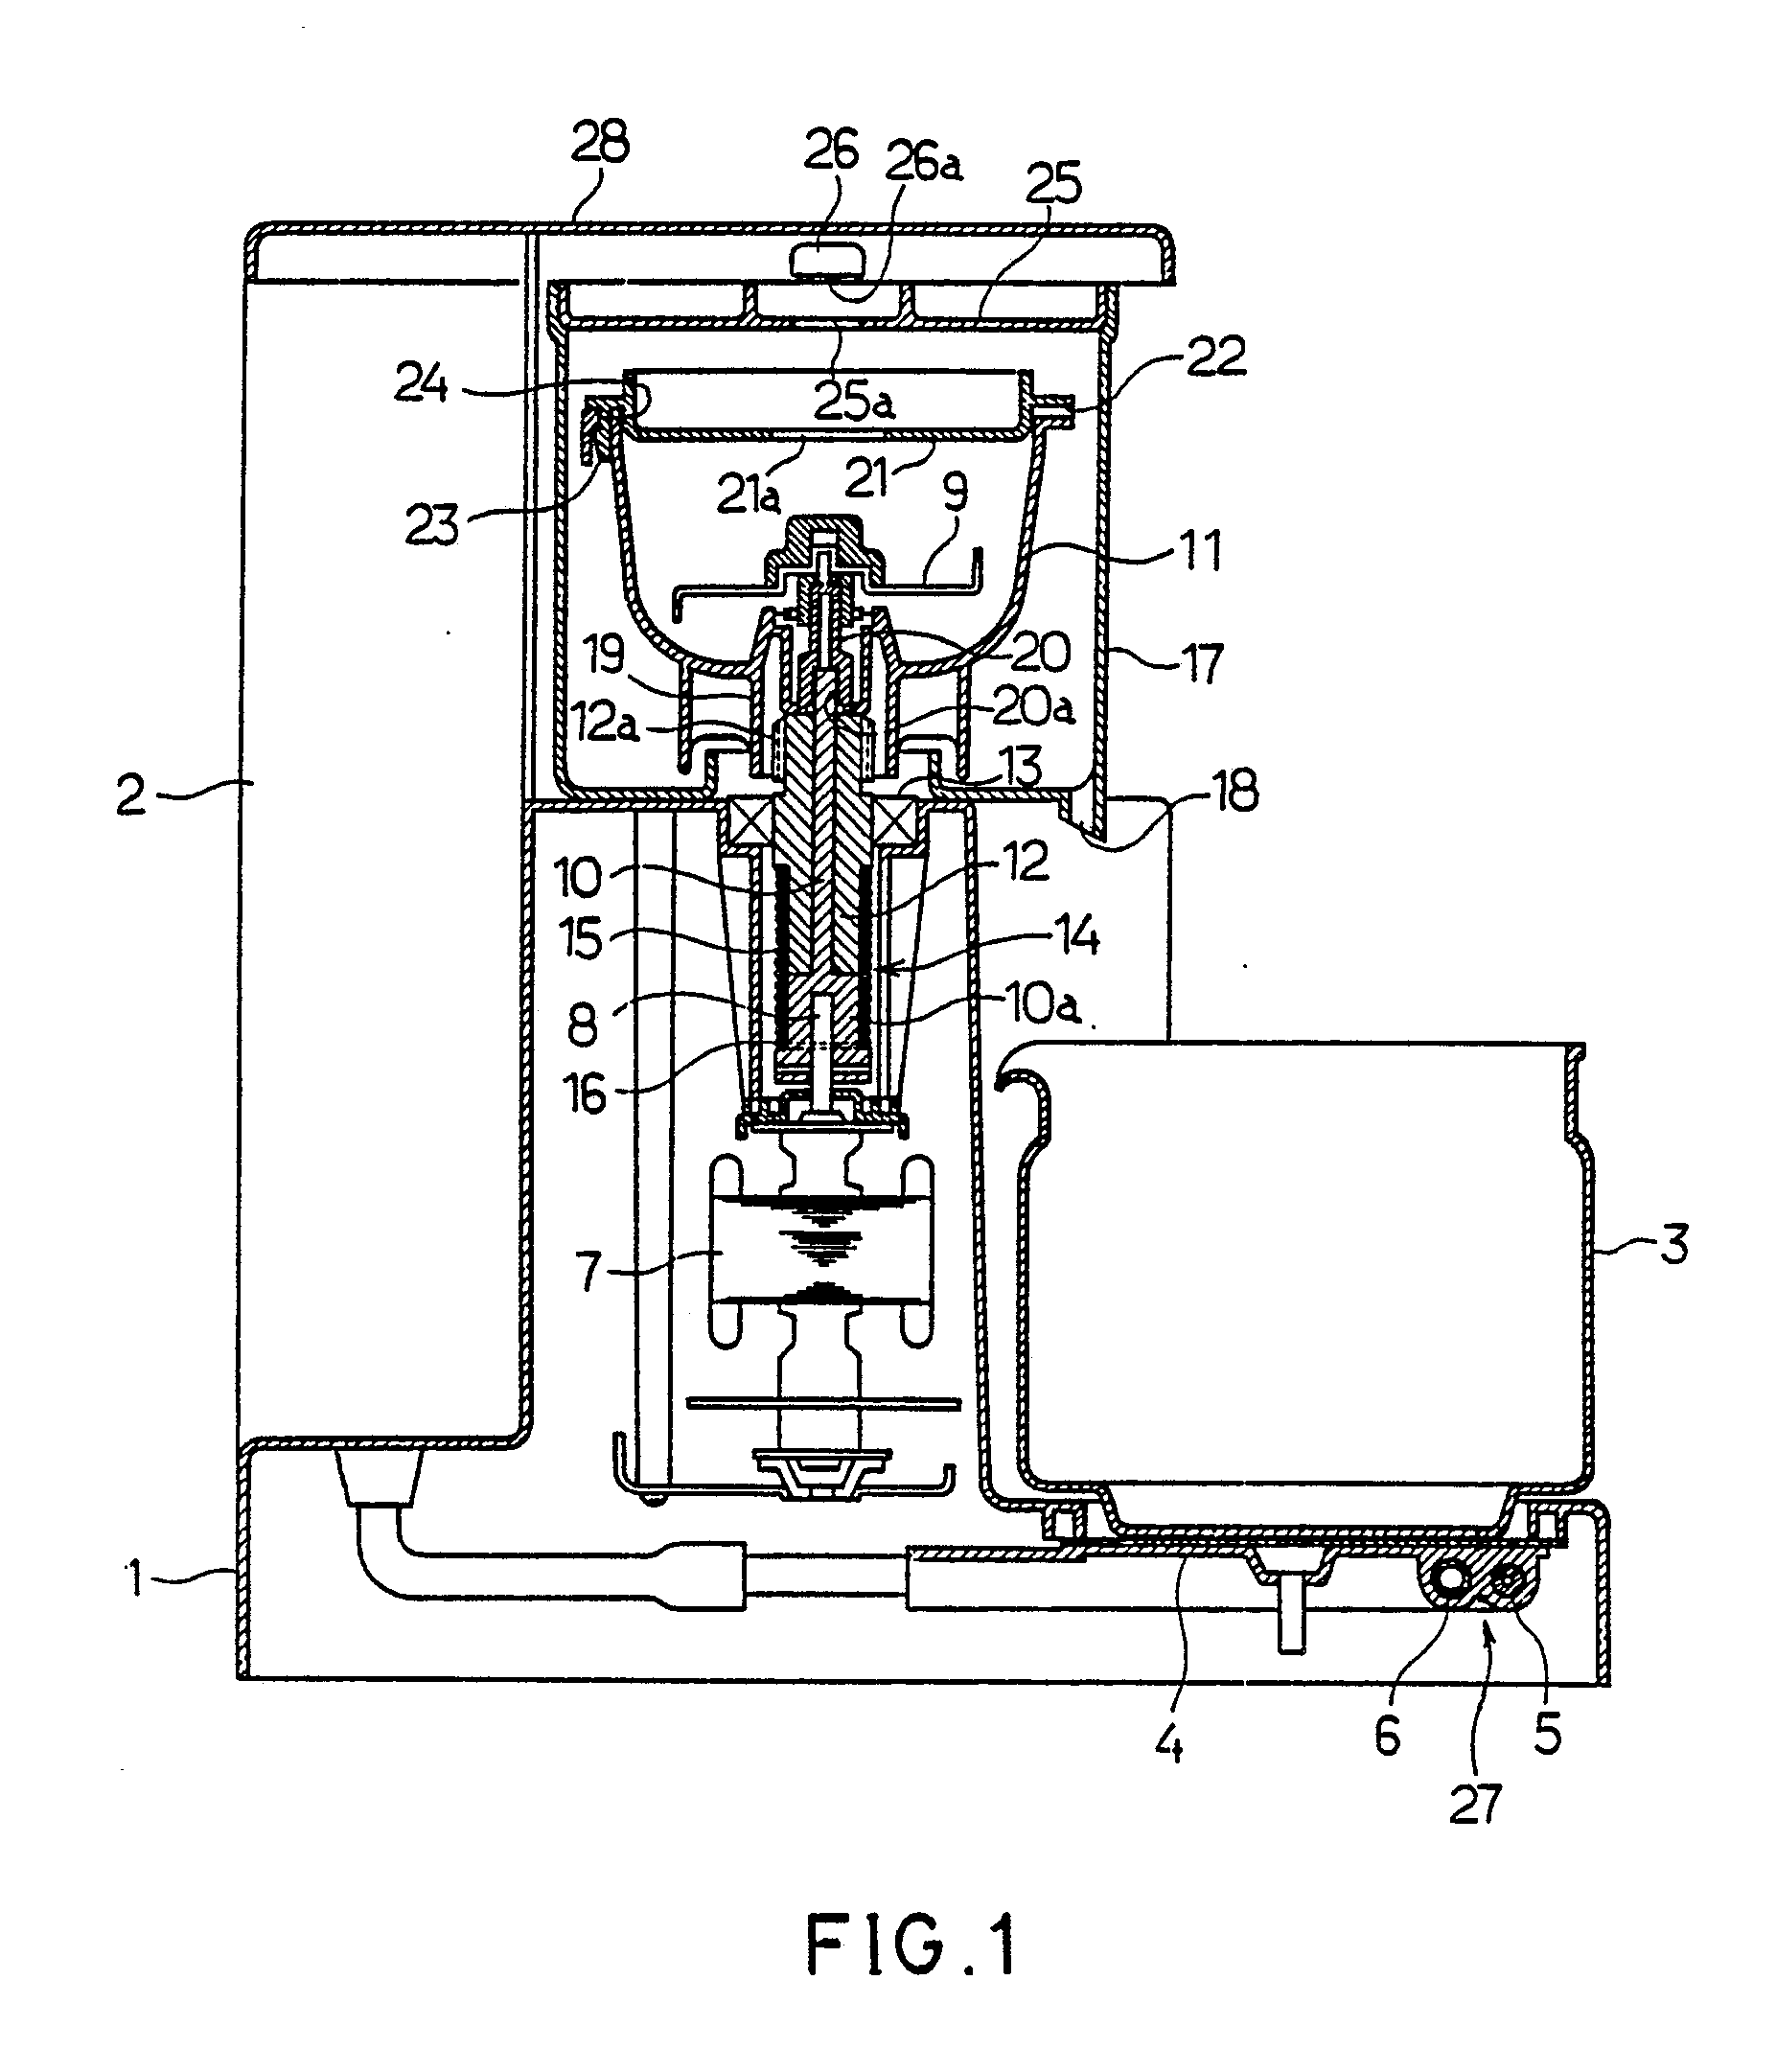 Centrifugal Coffee Maker : Patent ep a centrifugal brewing type coffee maker